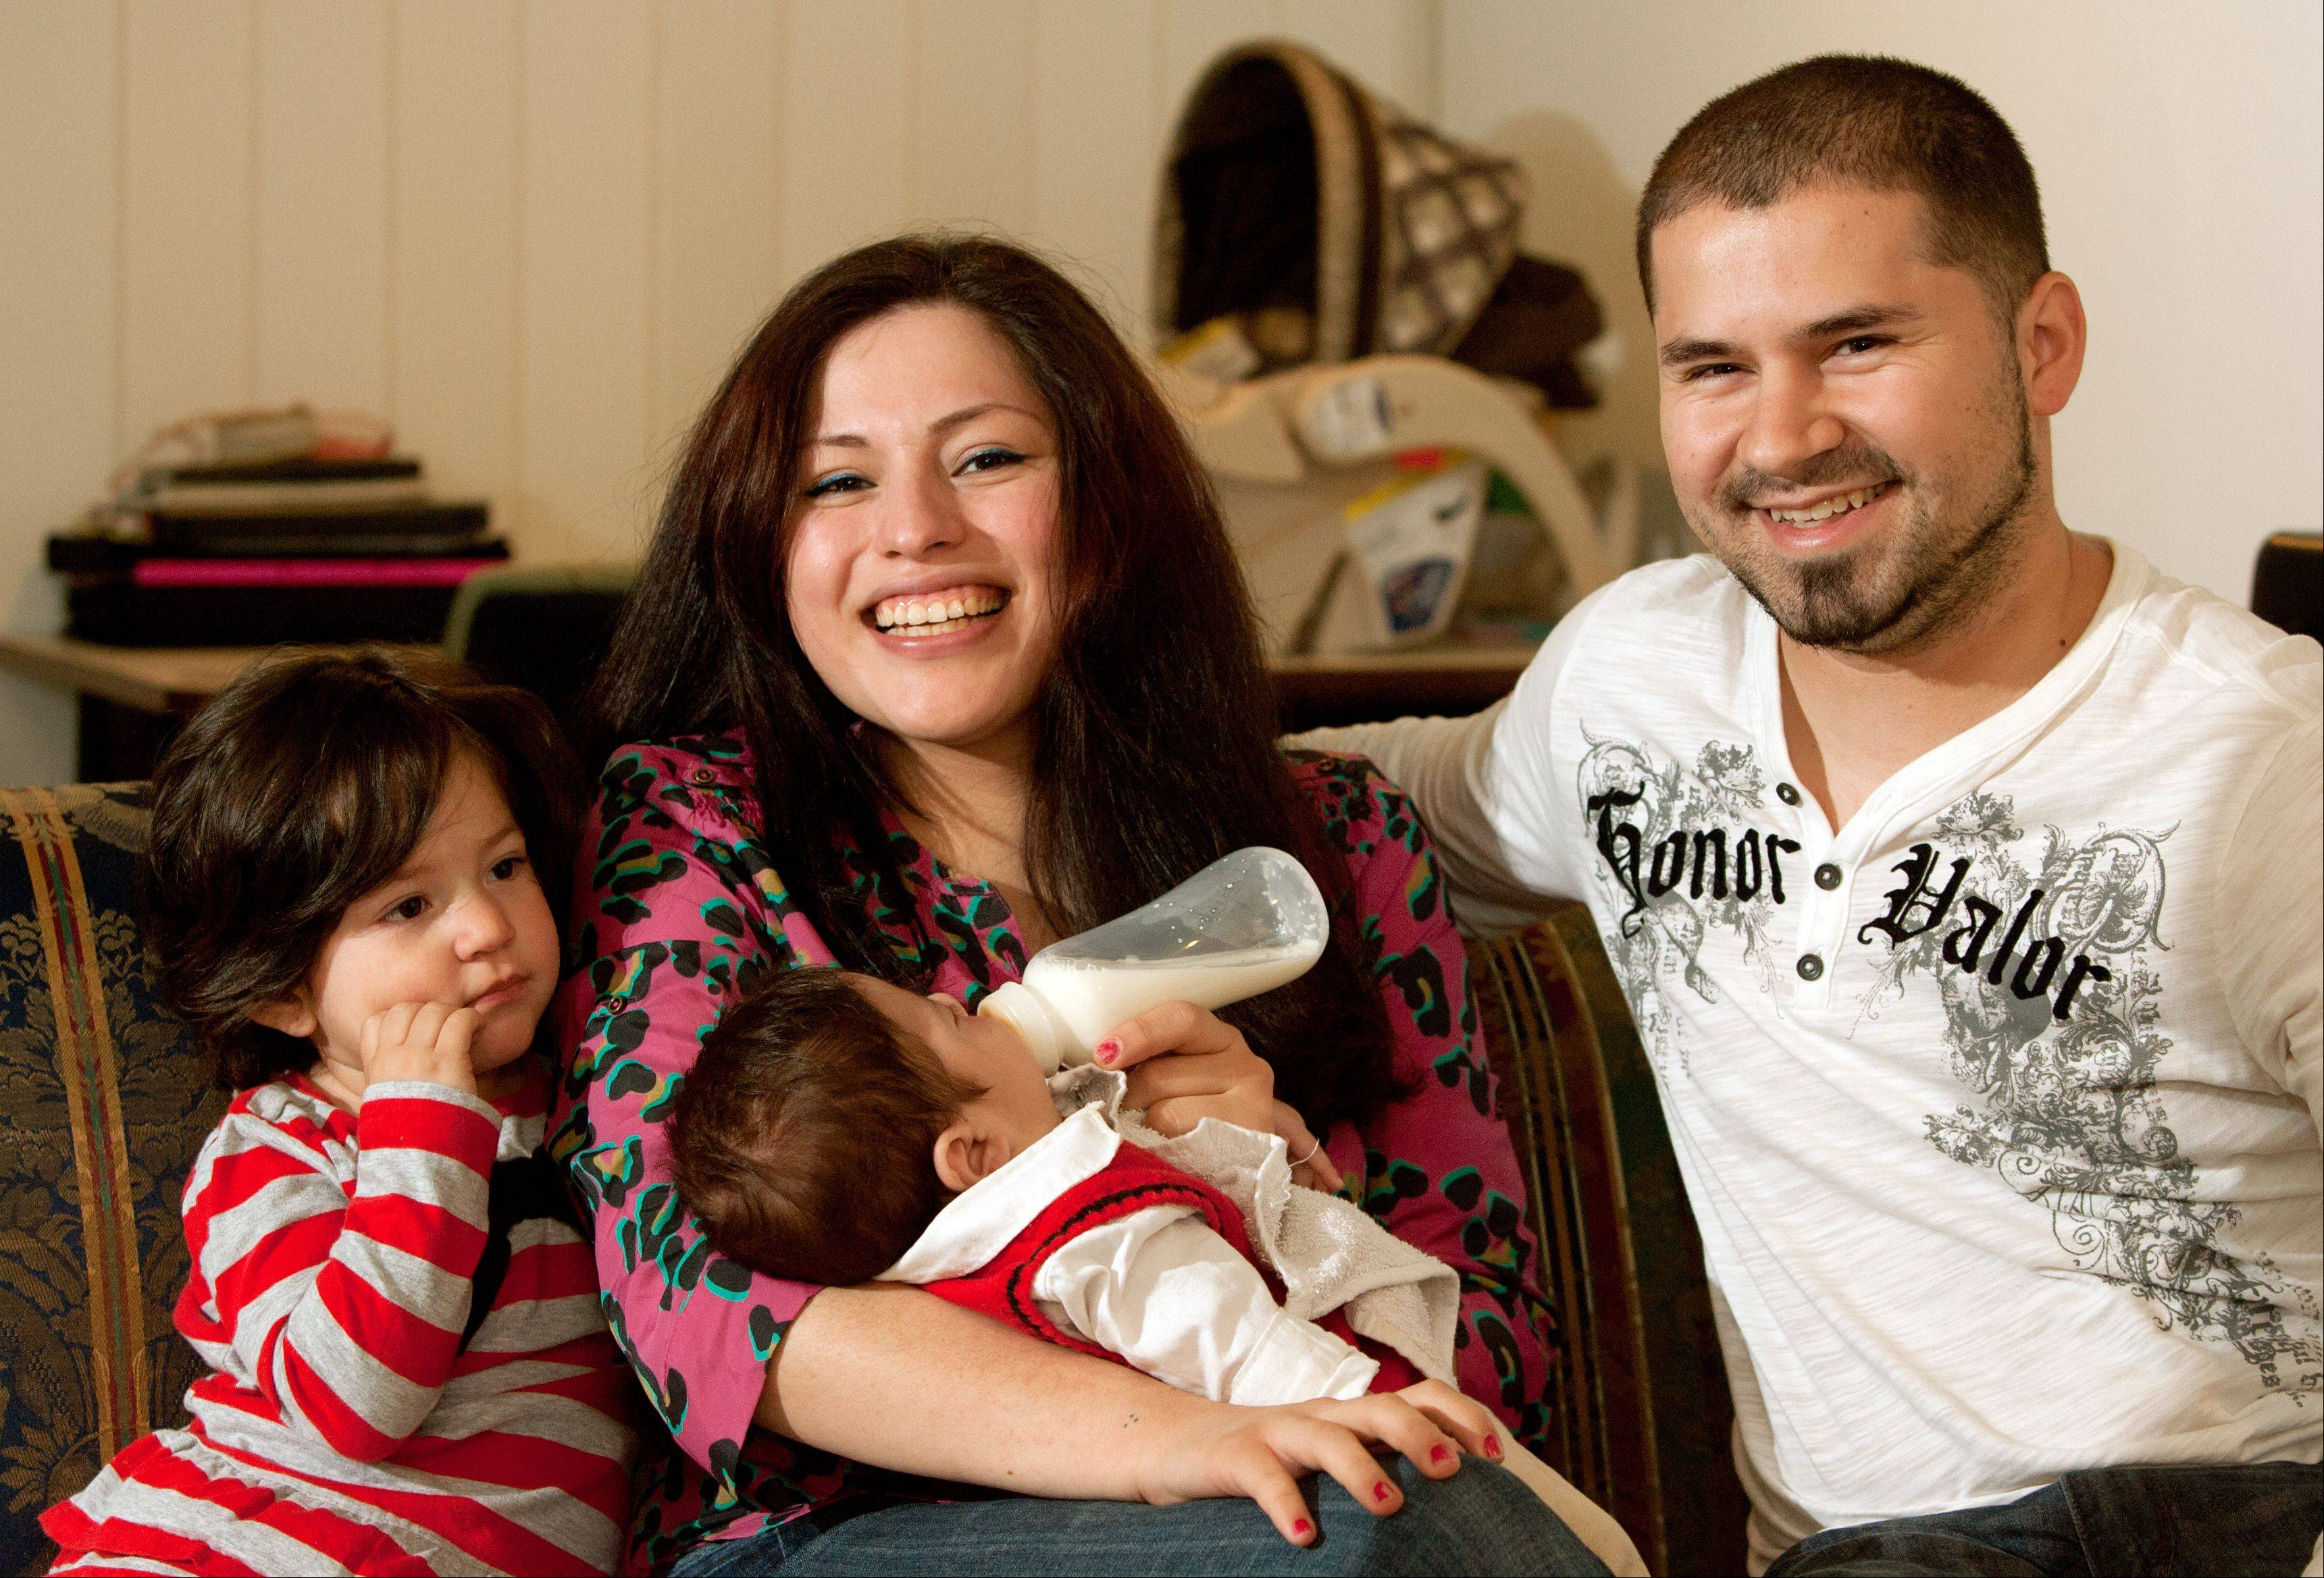 A lifesaving surgery for John Carlos Guzman, born on Valentine's Day, gives his mom, Sofia Espinoza, his dad, Juan Carlos Guzman, and their daughter, Emily Jaylin Guzman, 2, reason to celebrate as a family this Mother's Day.